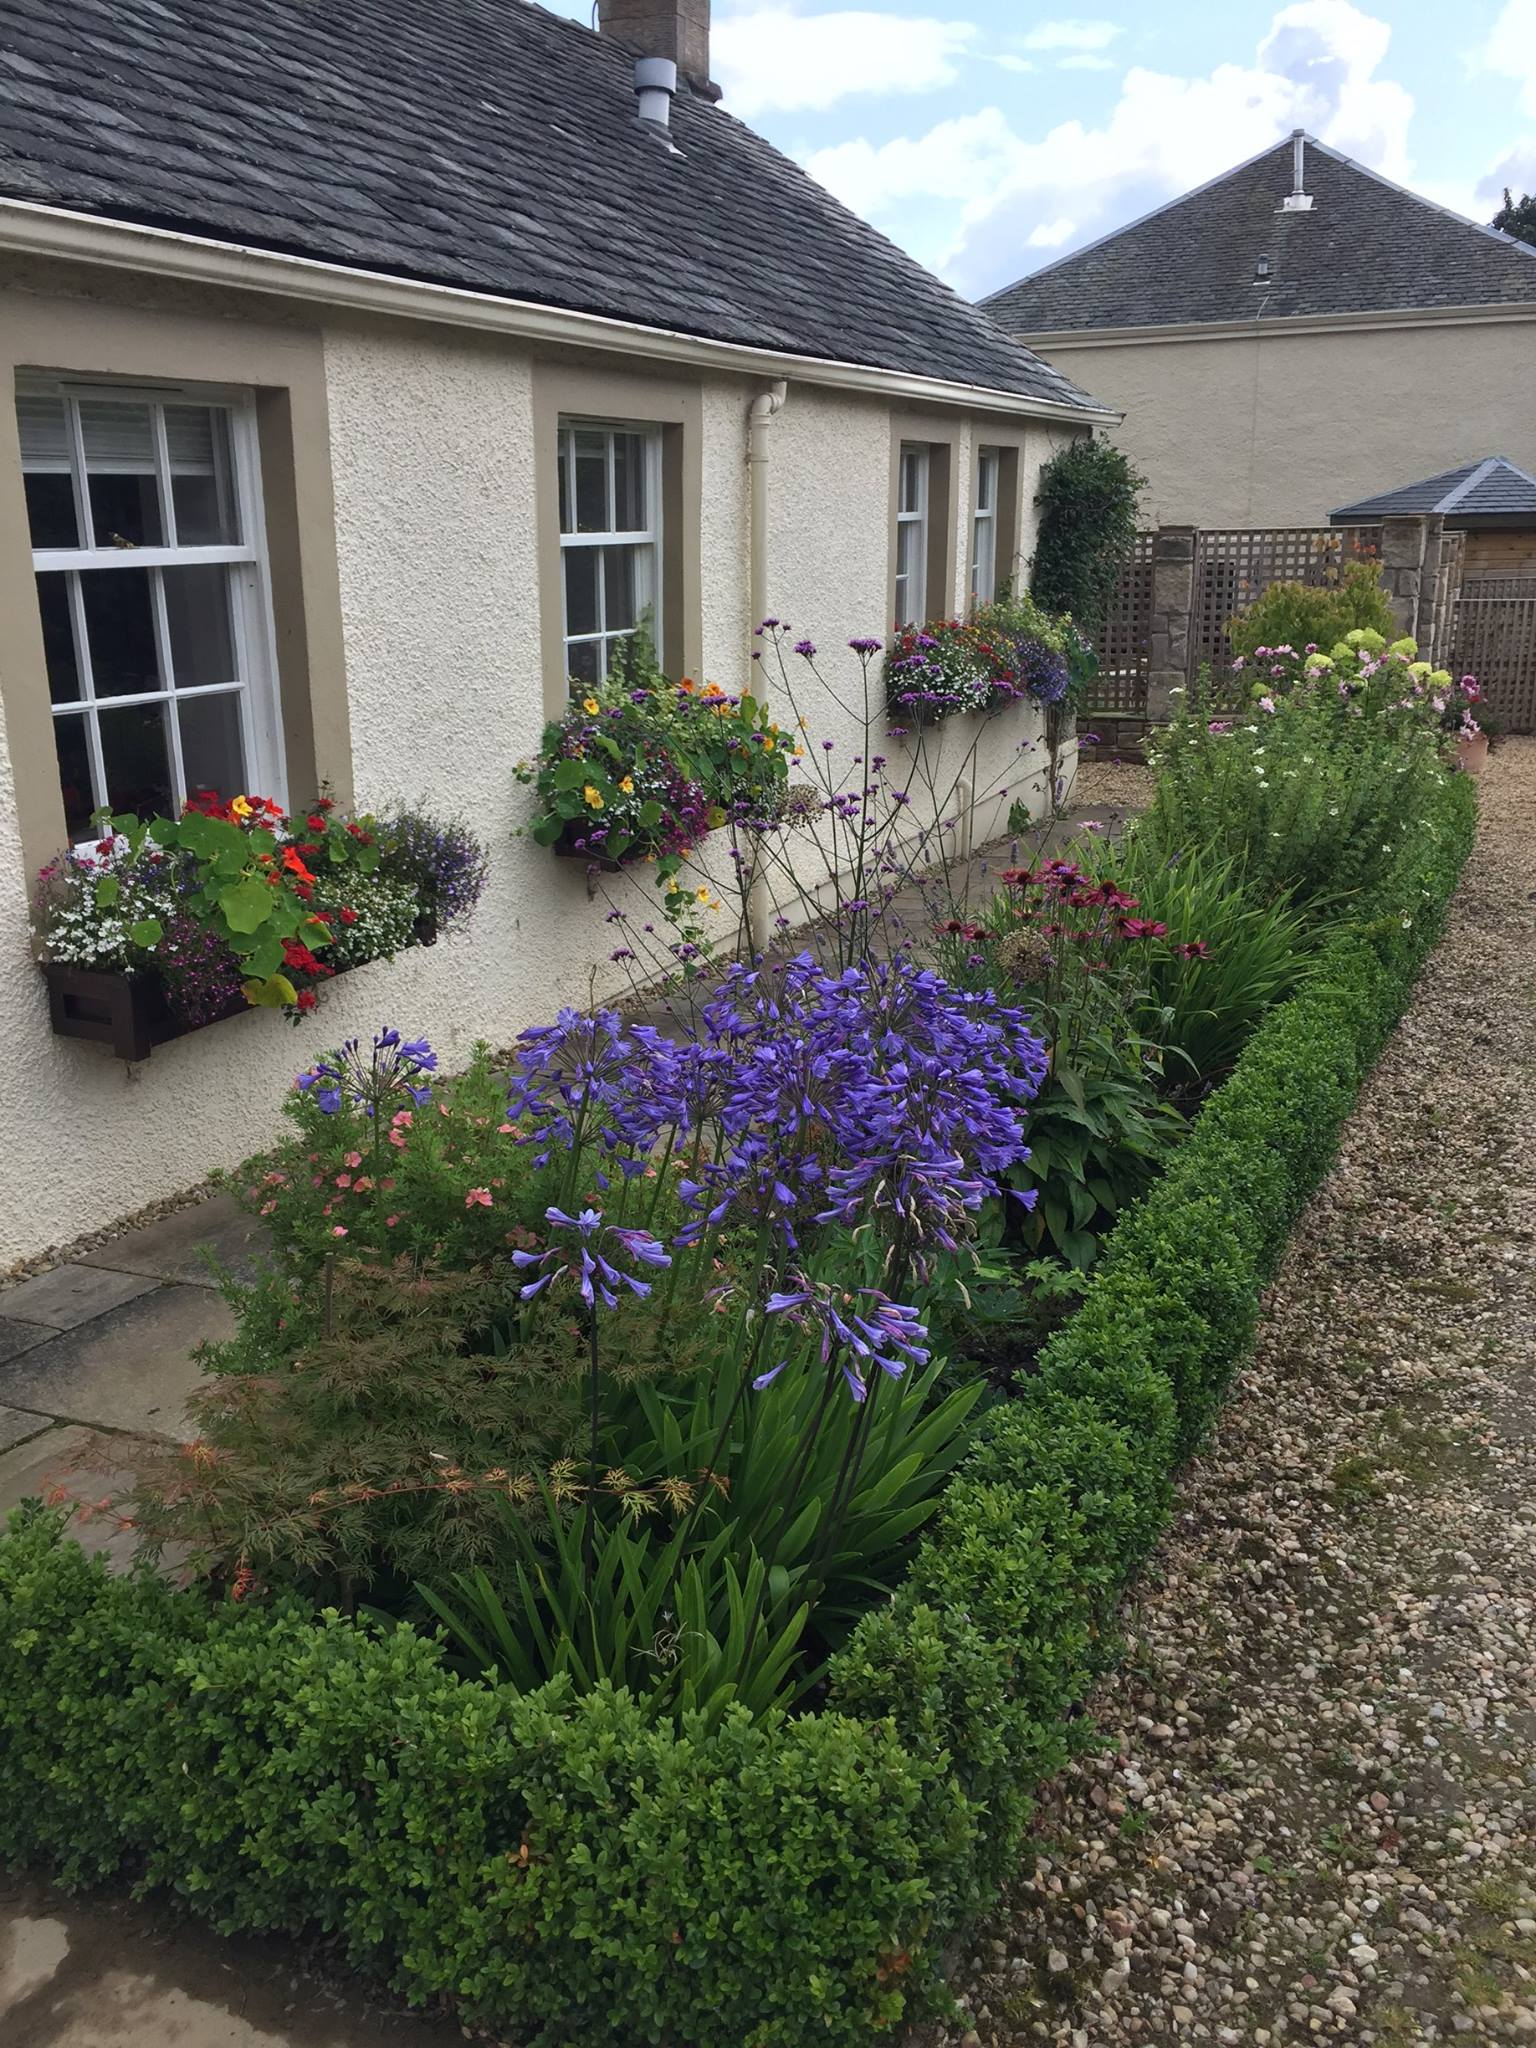 Herbaceous border within a perimeter box hedge for a garden near Glasgow